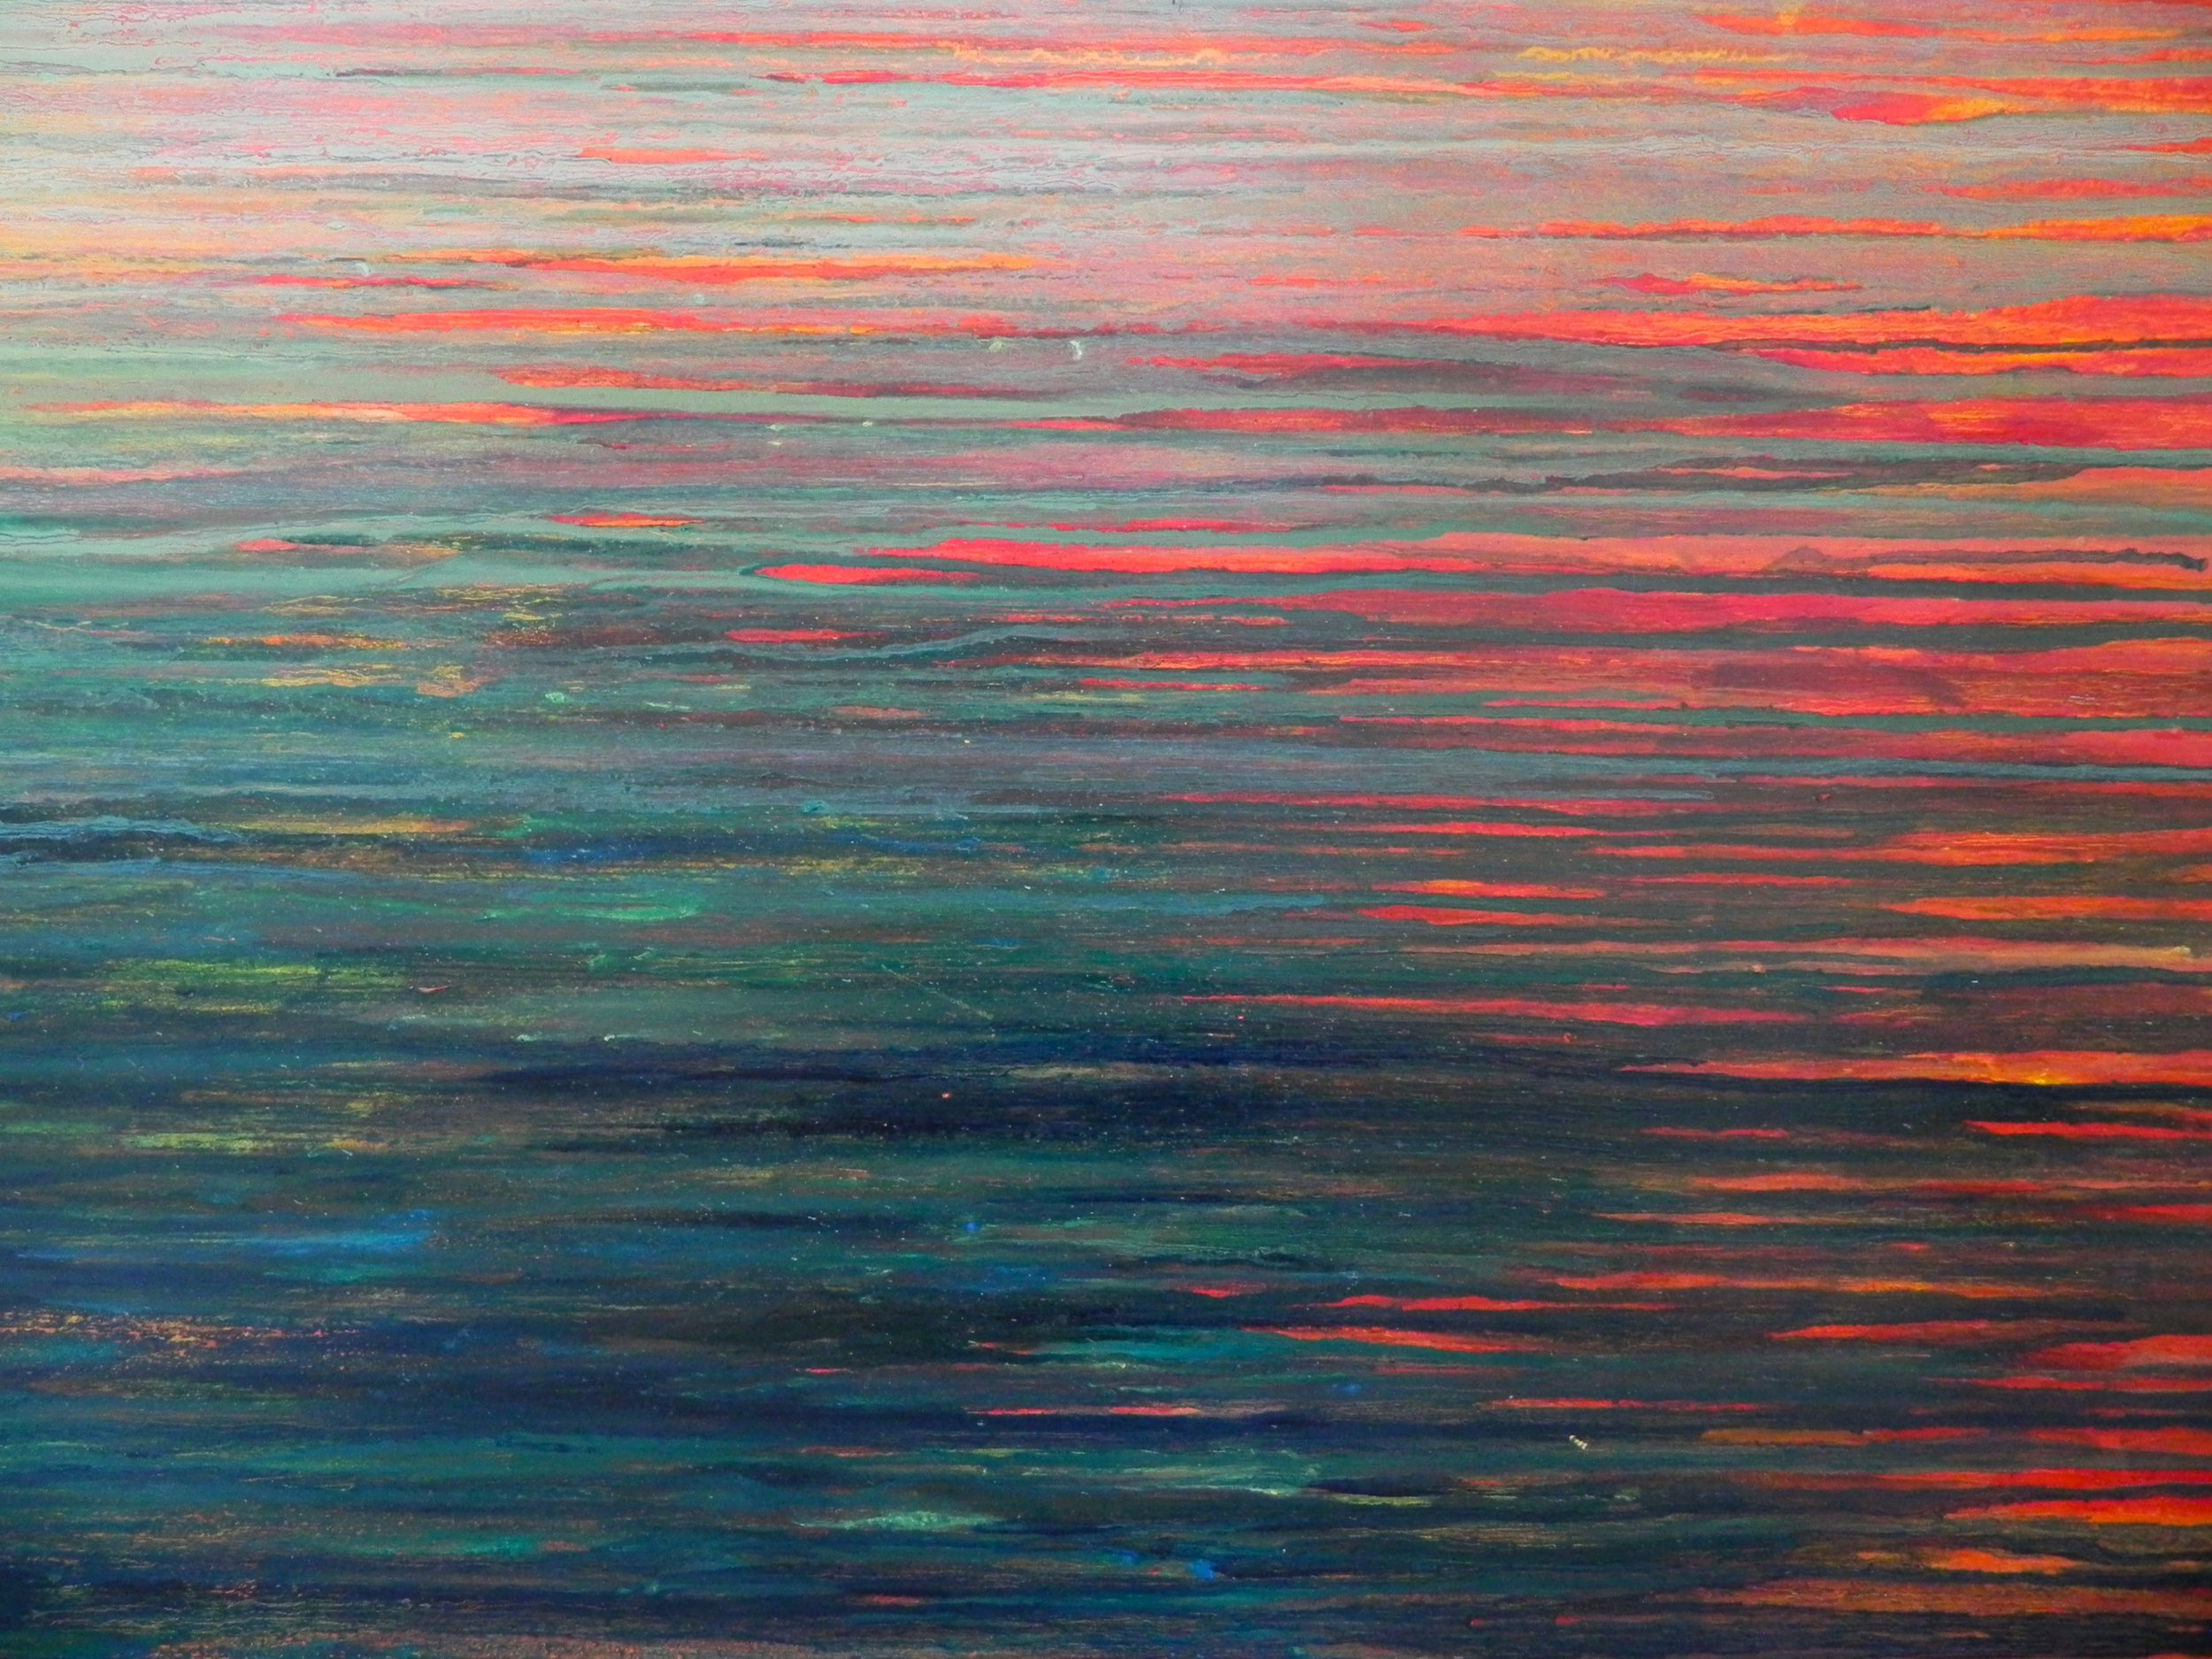 "SUNSET, 2012. 24"" x 36"". Plywood. Mixed Media. Copyright © Karen Santos 2013."